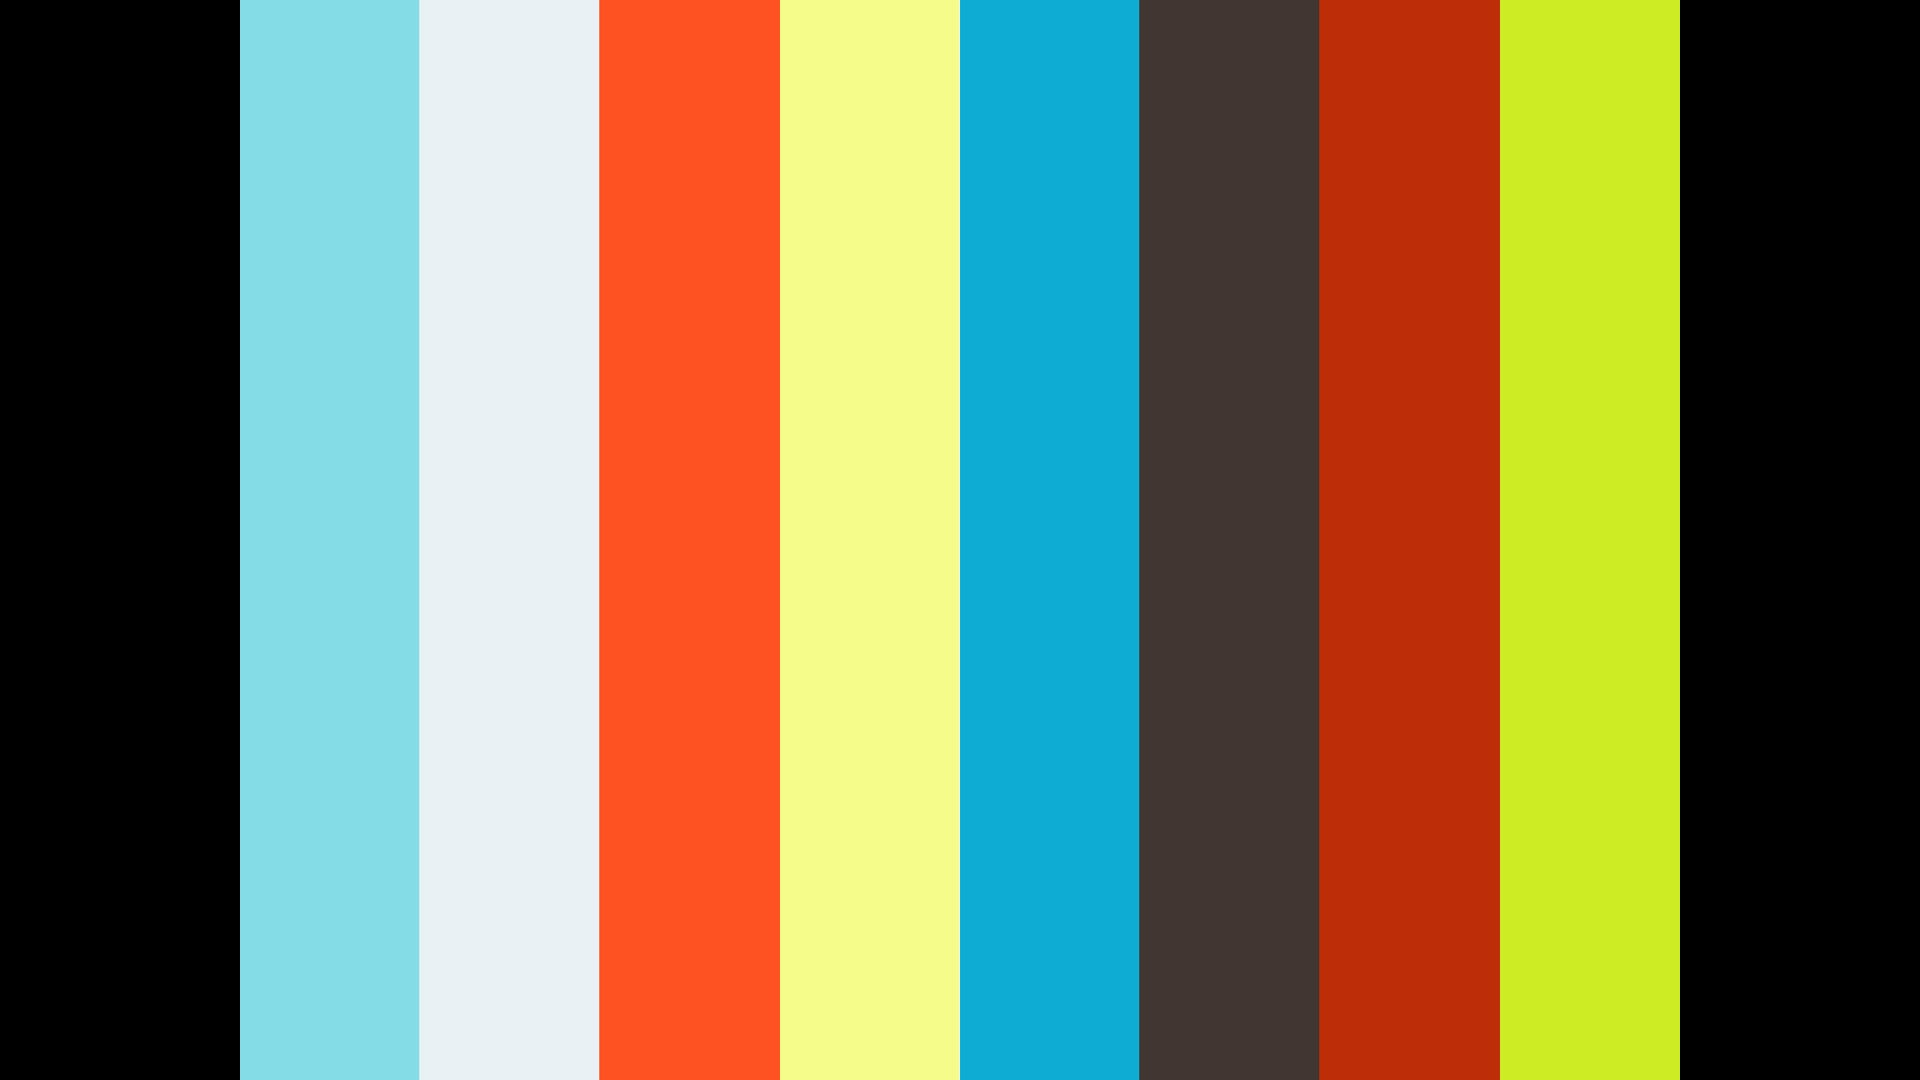 What Makes a Good Learning Environment?